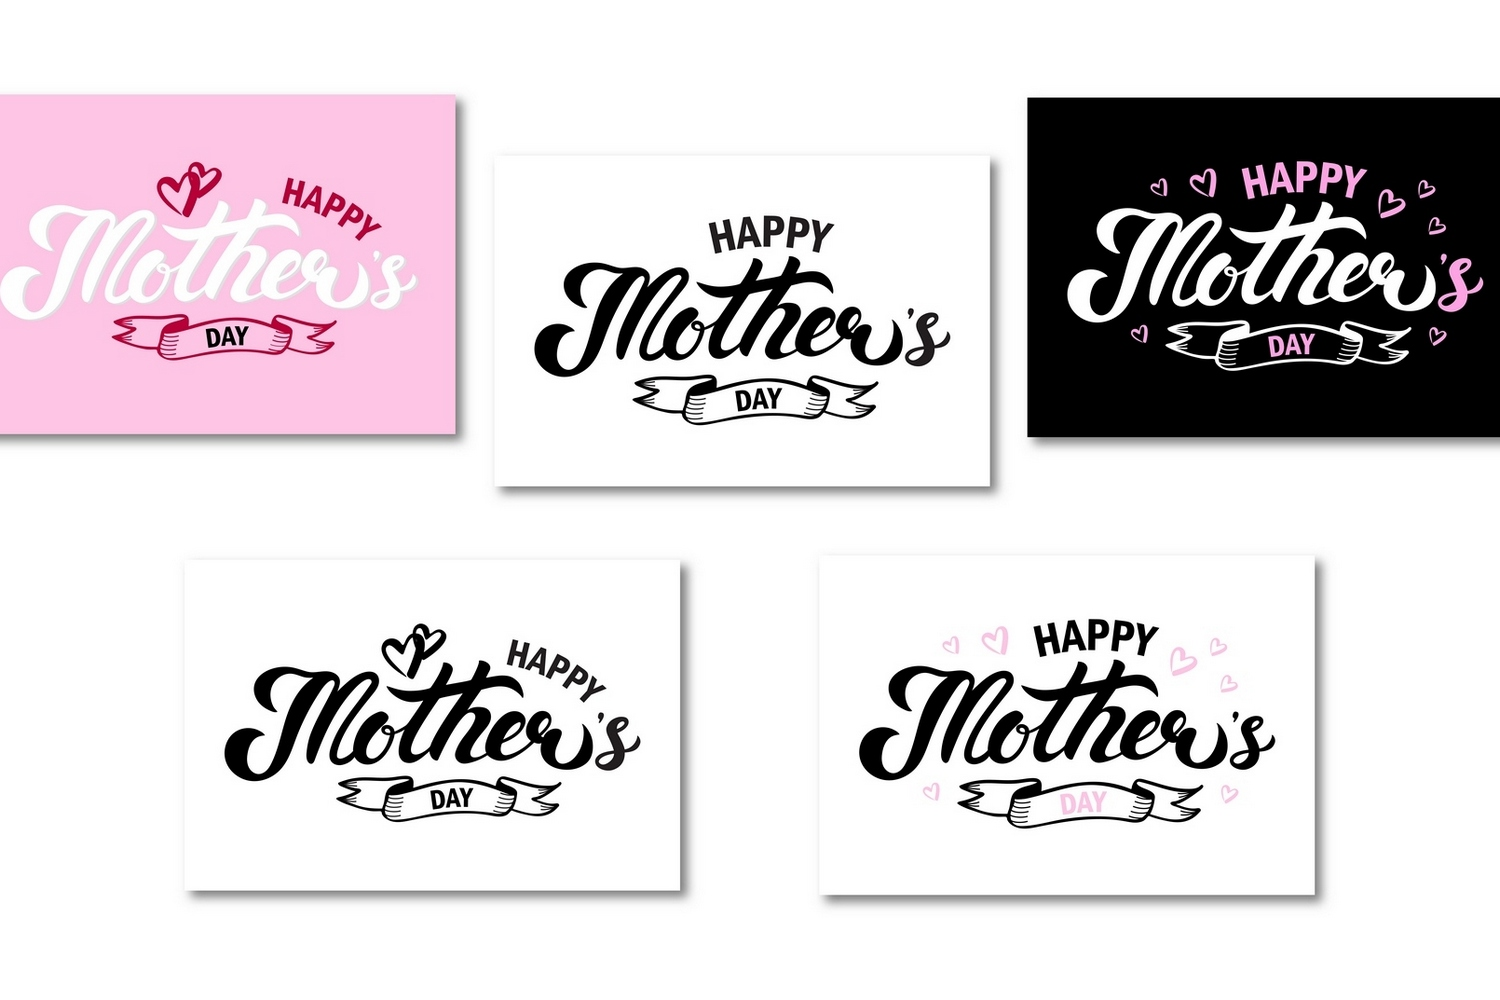 Happy Mother's Day Cards example image 2